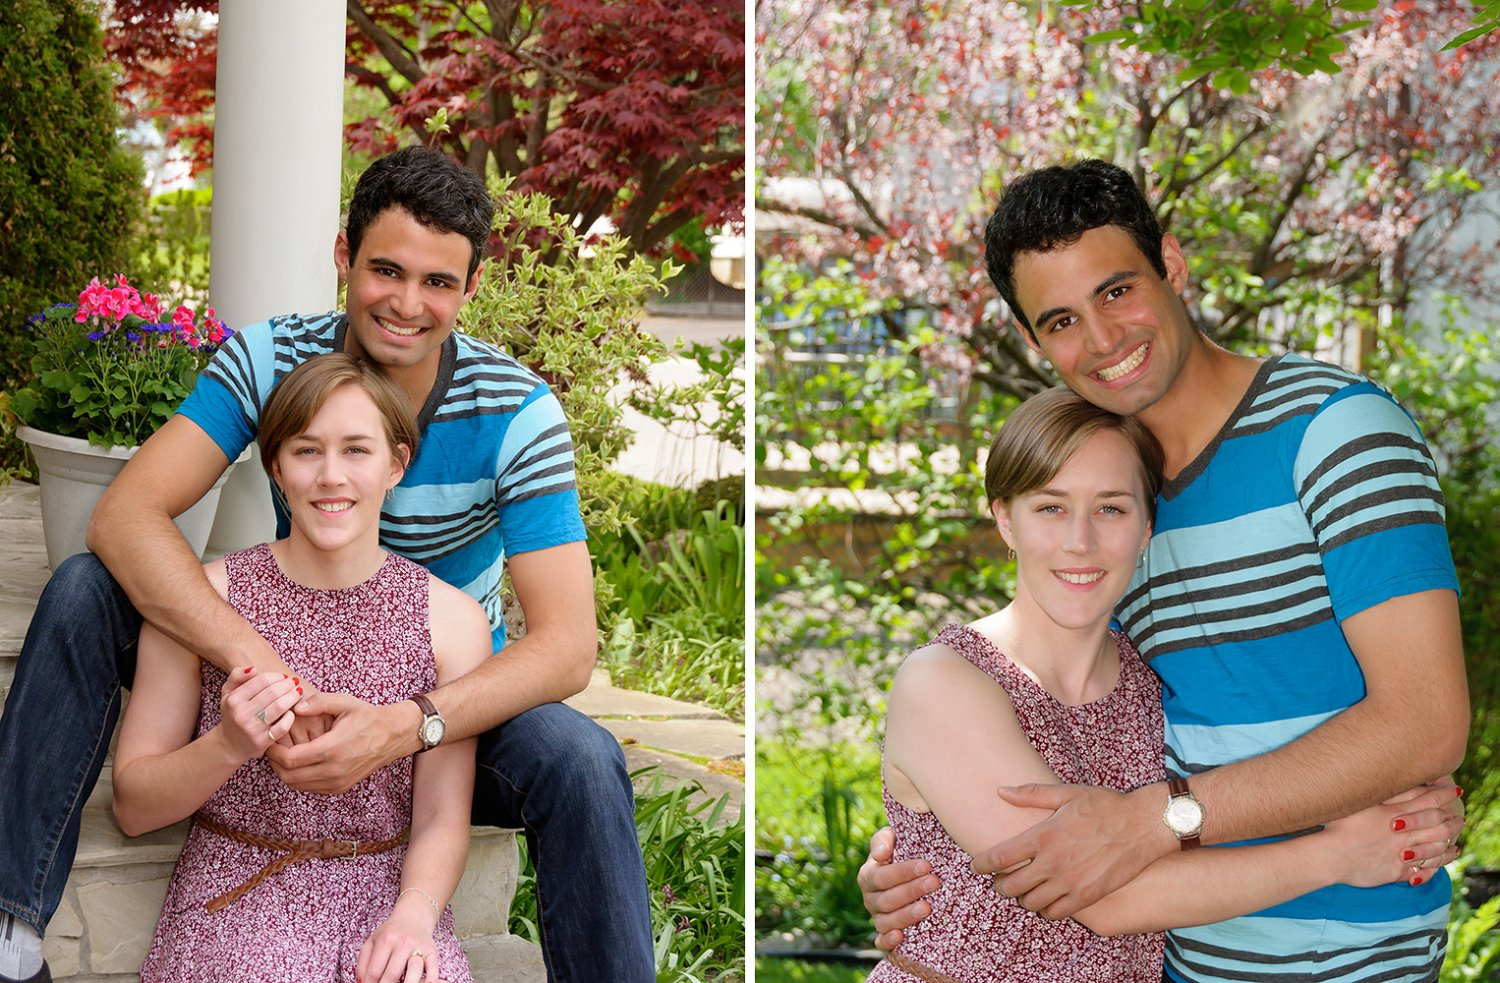 Spring & Summer Portraits in the Garden blog,